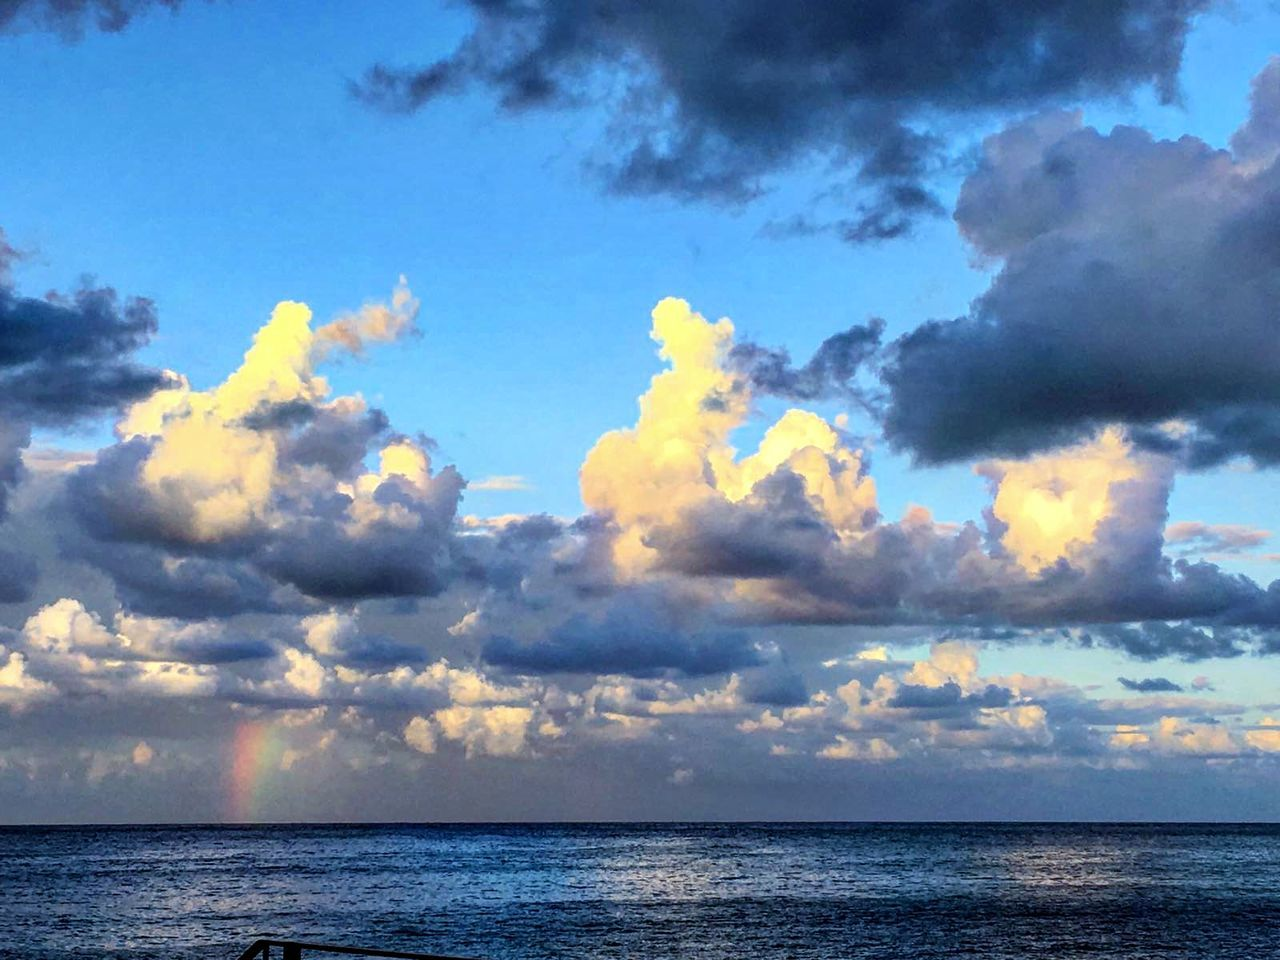 sea, sky, horizon over water, scenics, beauty in nature, cloud - sky, nature, tranquil scene, water, tranquility, beach, no people, outdoors, day